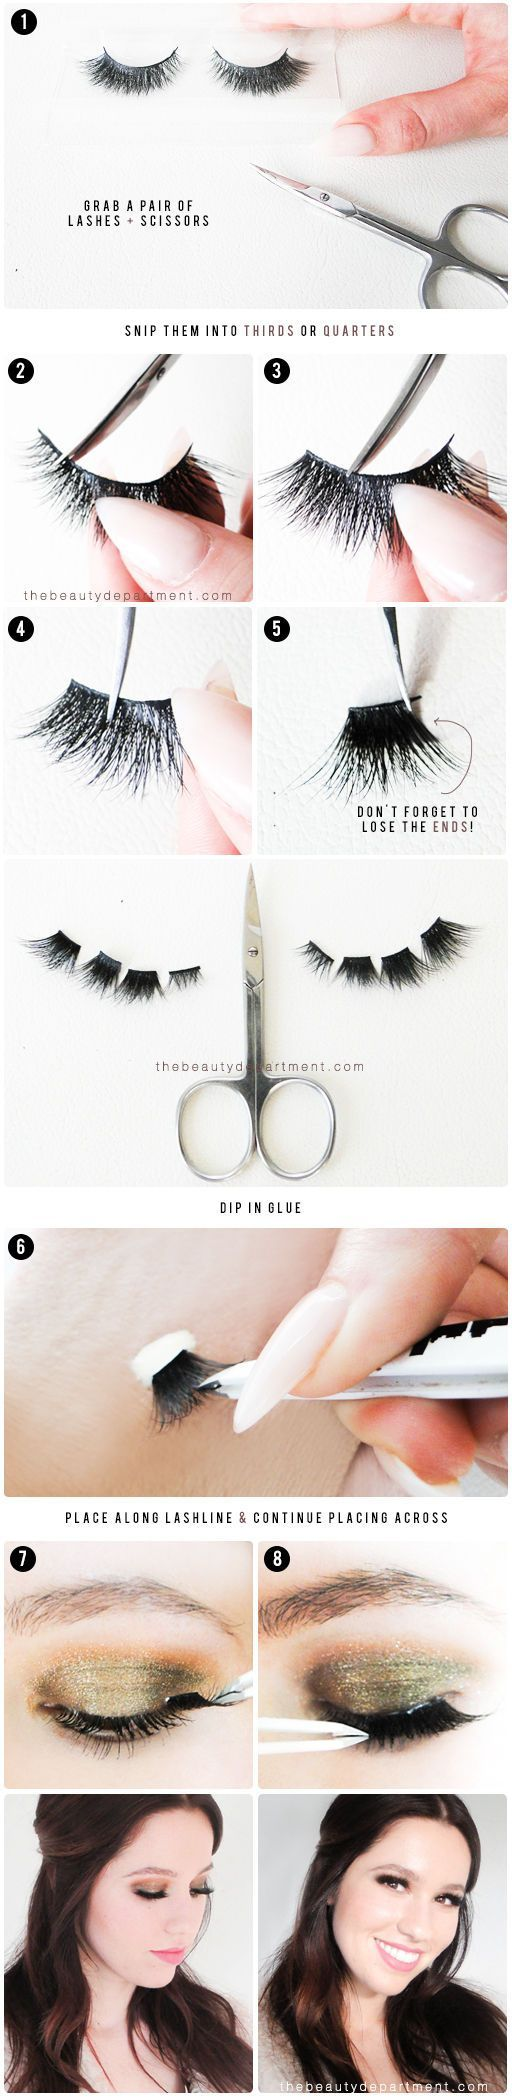 TUTORIAL + PHOTOGRAPHY BY AMY NADINE, GRAPHIC DESIGN BY EUNICE CHUN False lashes cause a lot of problems if you don't have years of…